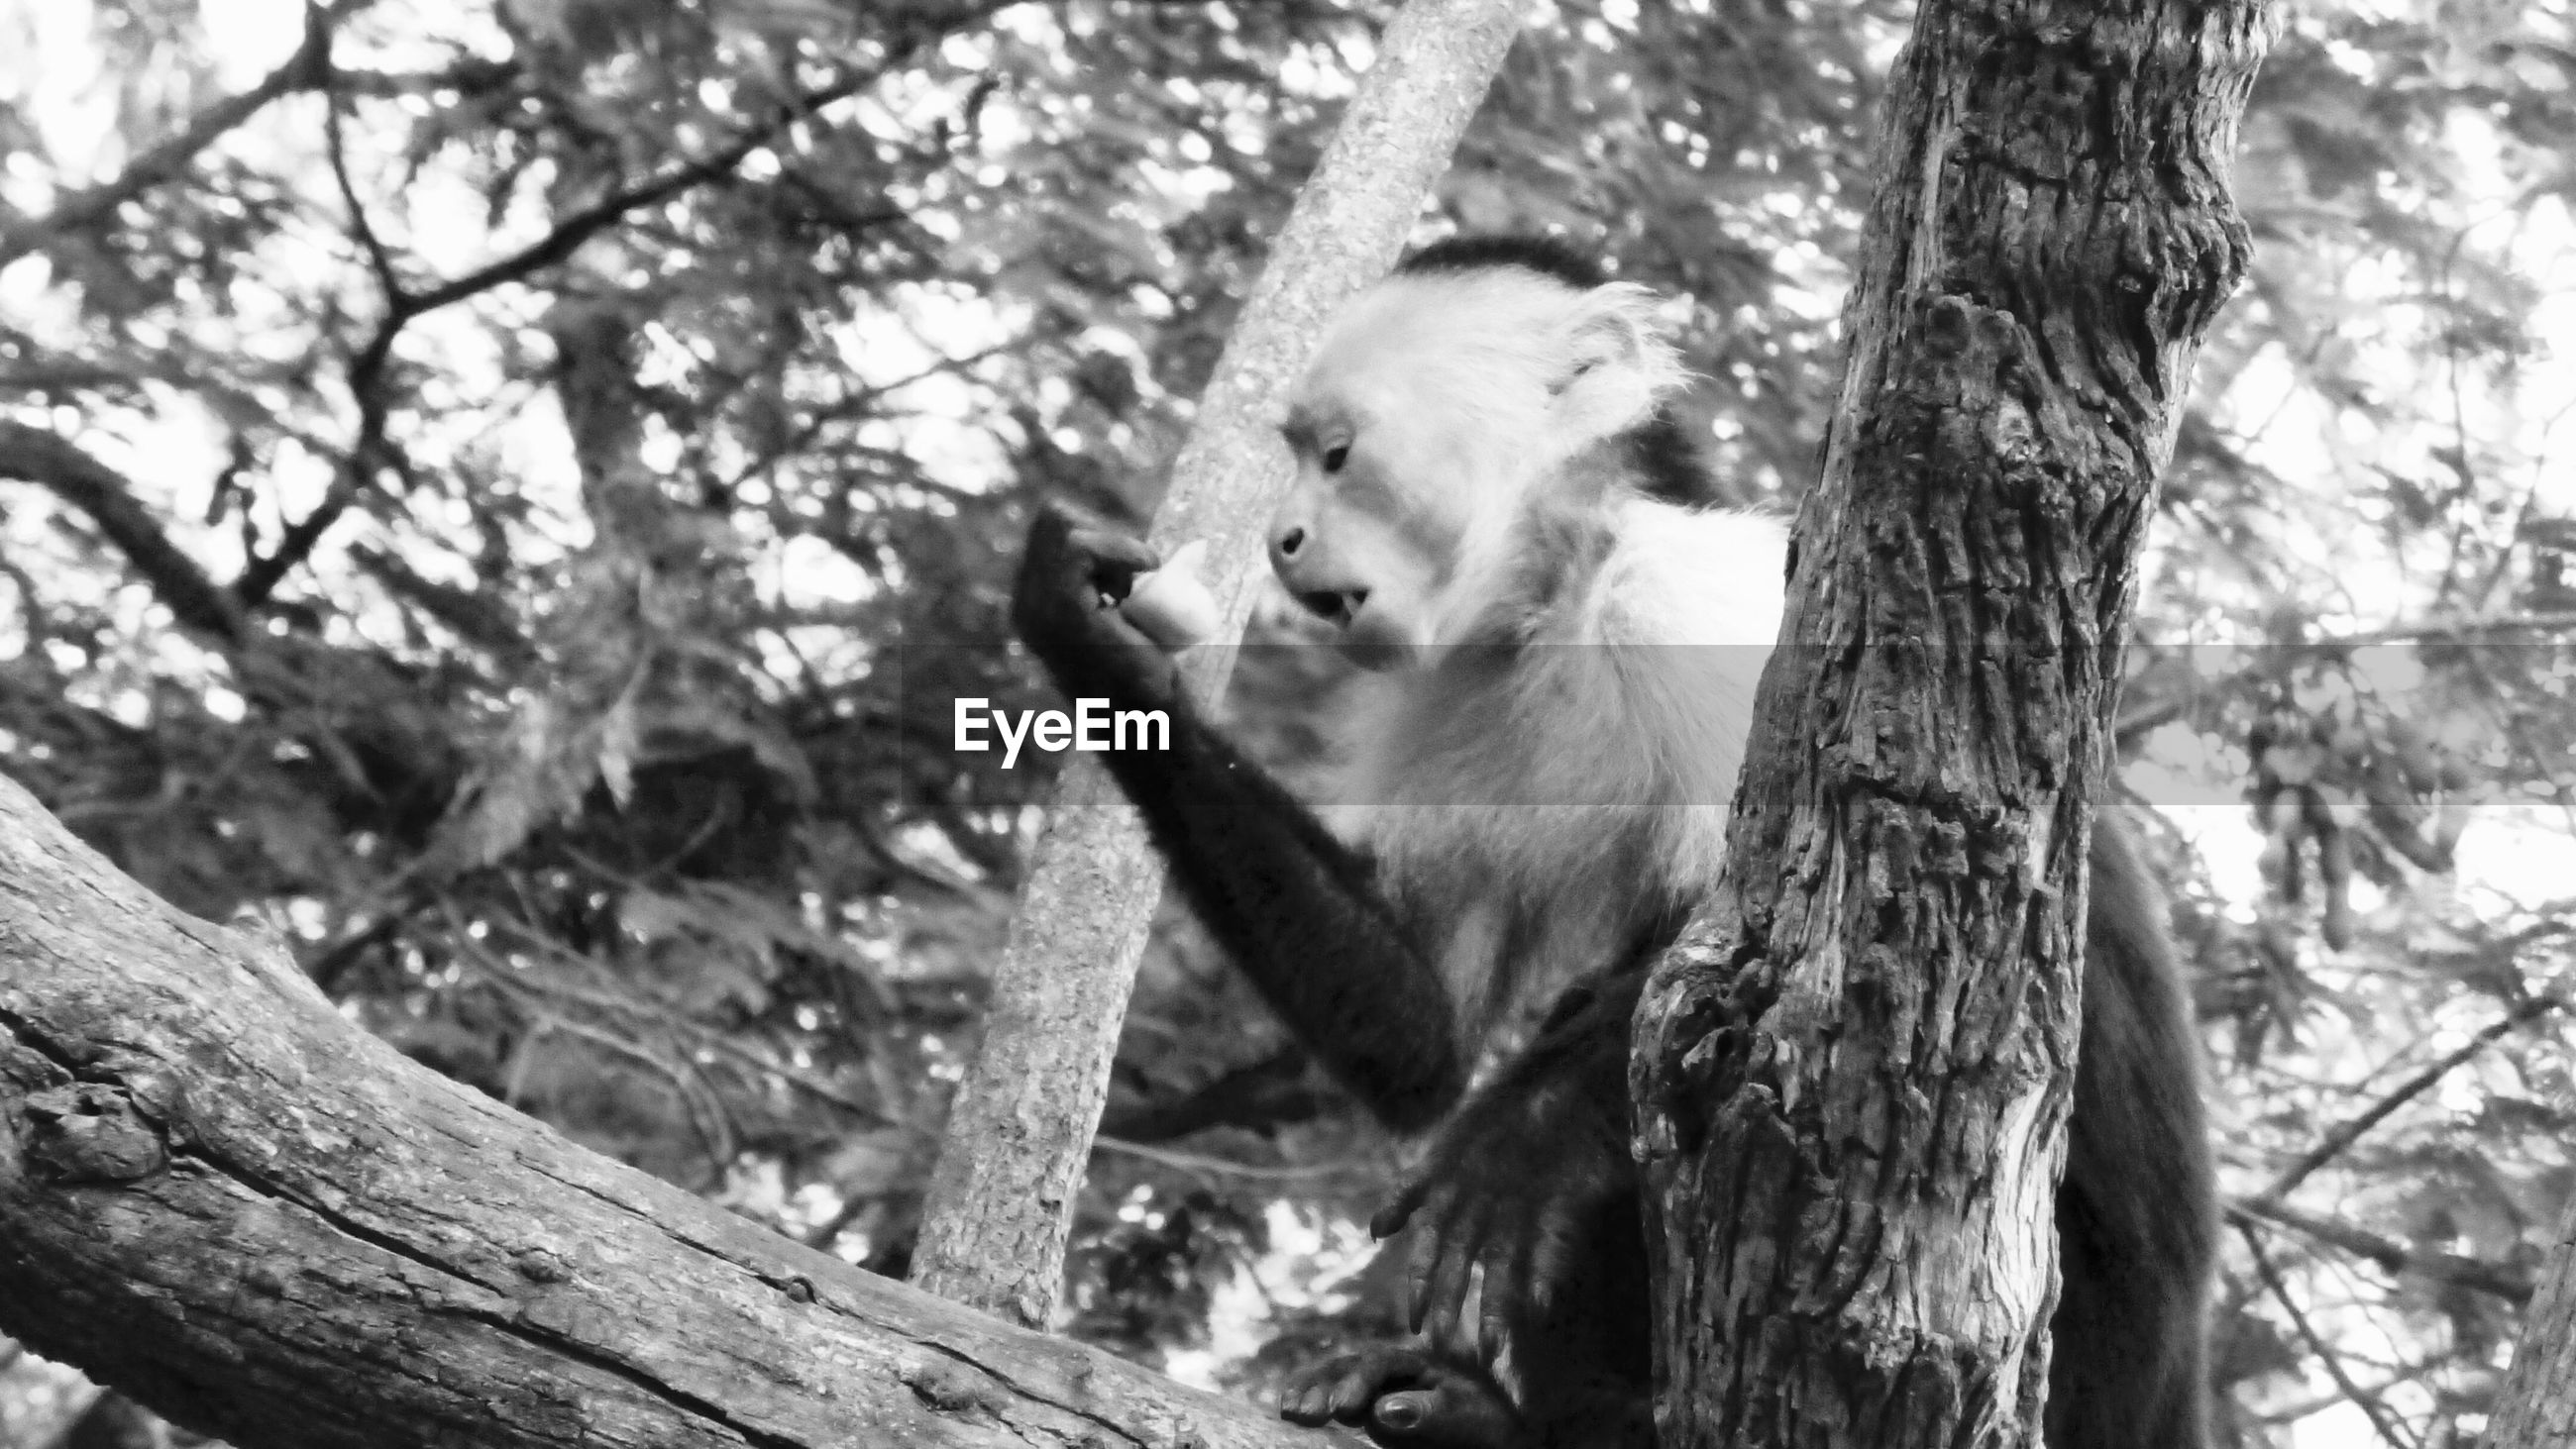 Low angle view of capuchin monkey on tree